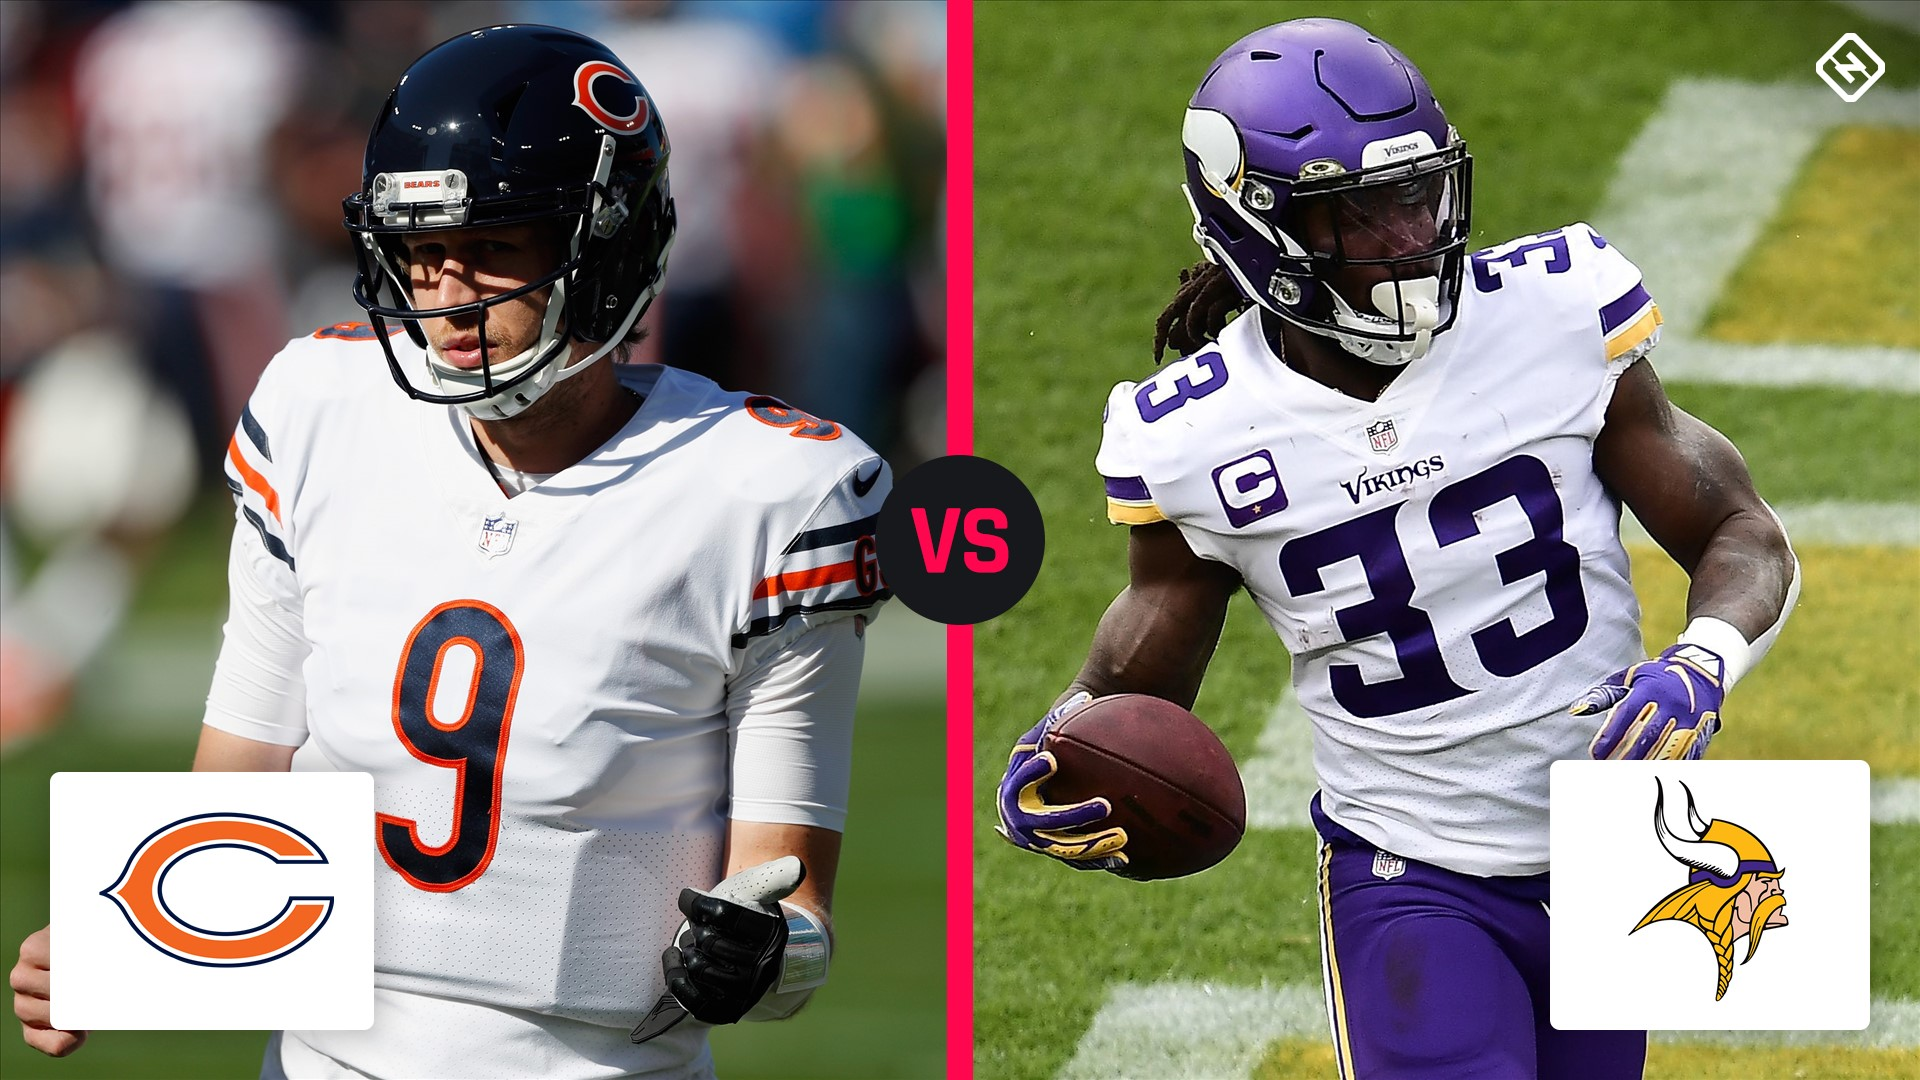 Bears vs. Vikings live score, updates, highlights from 'Monday Night Football' game